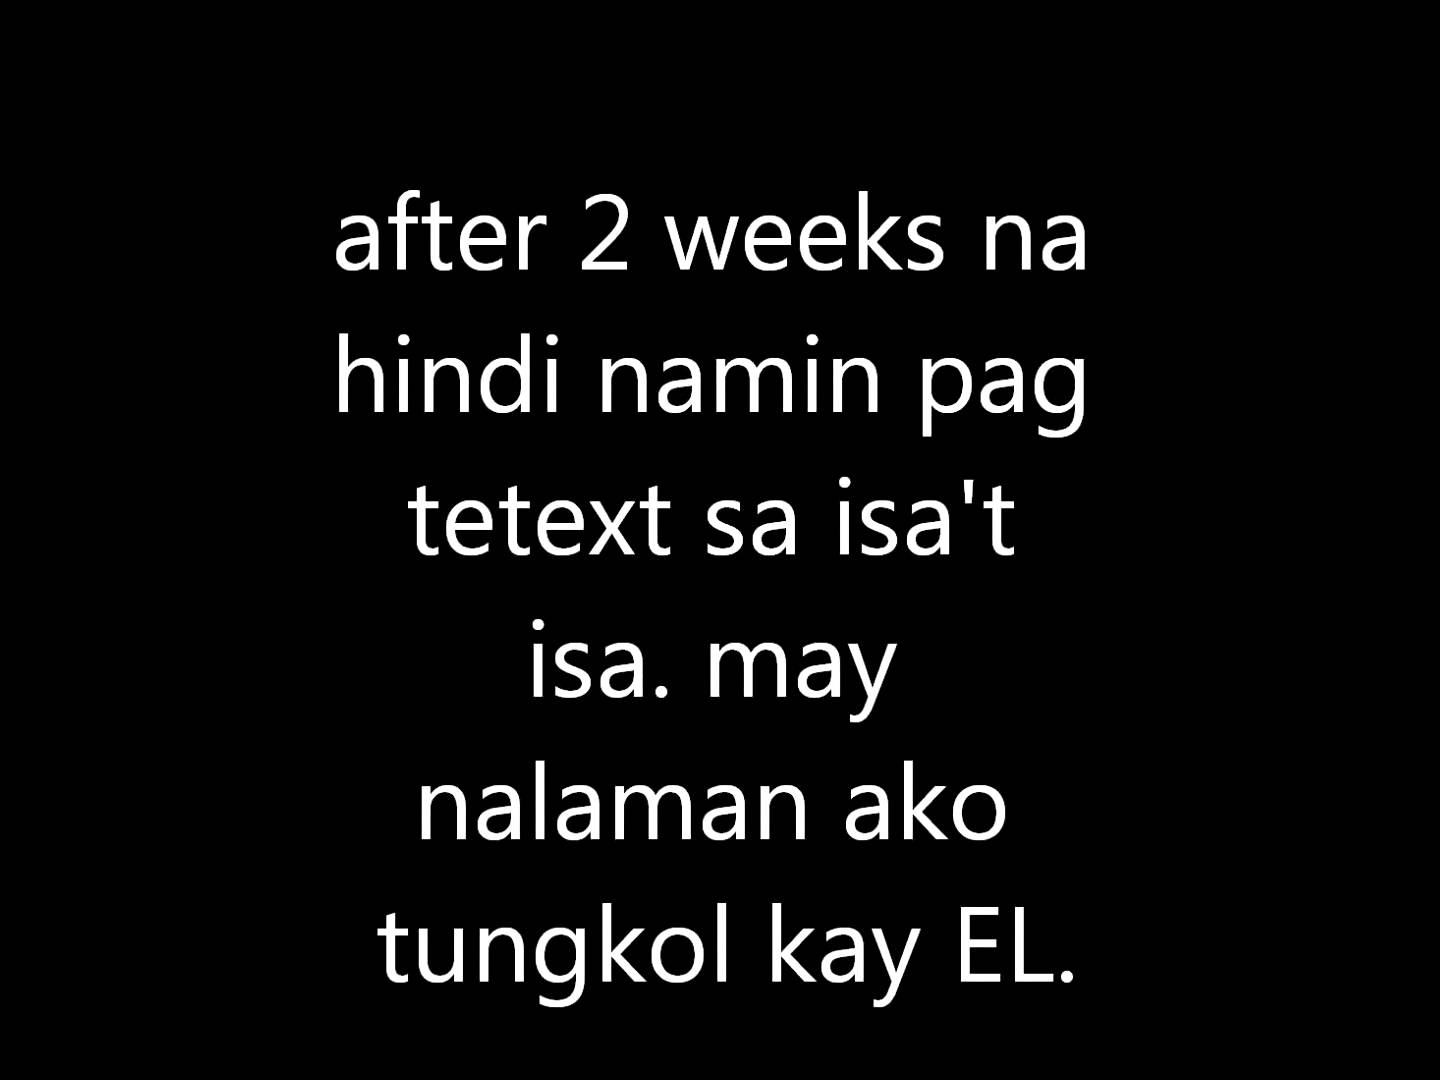 Wallpaper Love Quotes Sad Tagalog : Tagalog Sad Love Quotes, Tagalog Heartbroken Thoughts ...